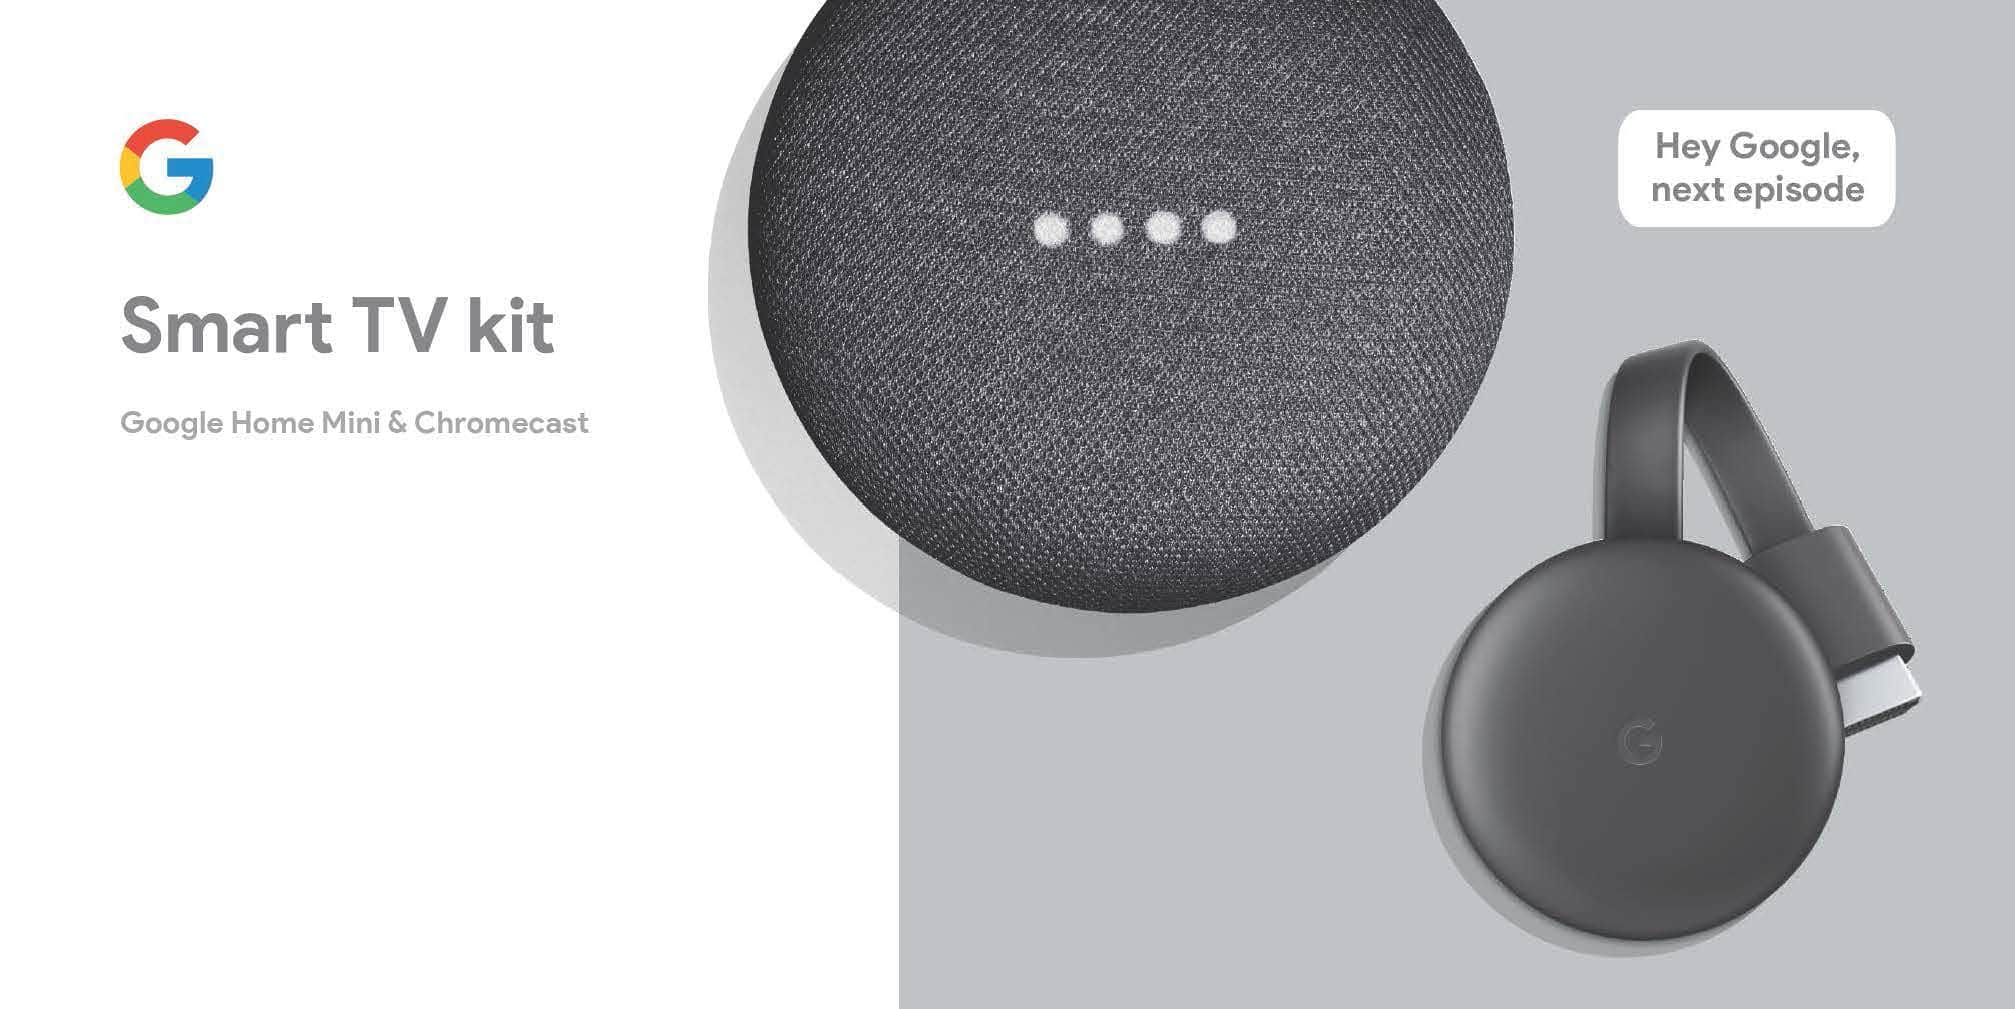 Google Smart TV Kit: Google Home Mini + Chromecast 3rd Generation $49 + FS @ Walmart